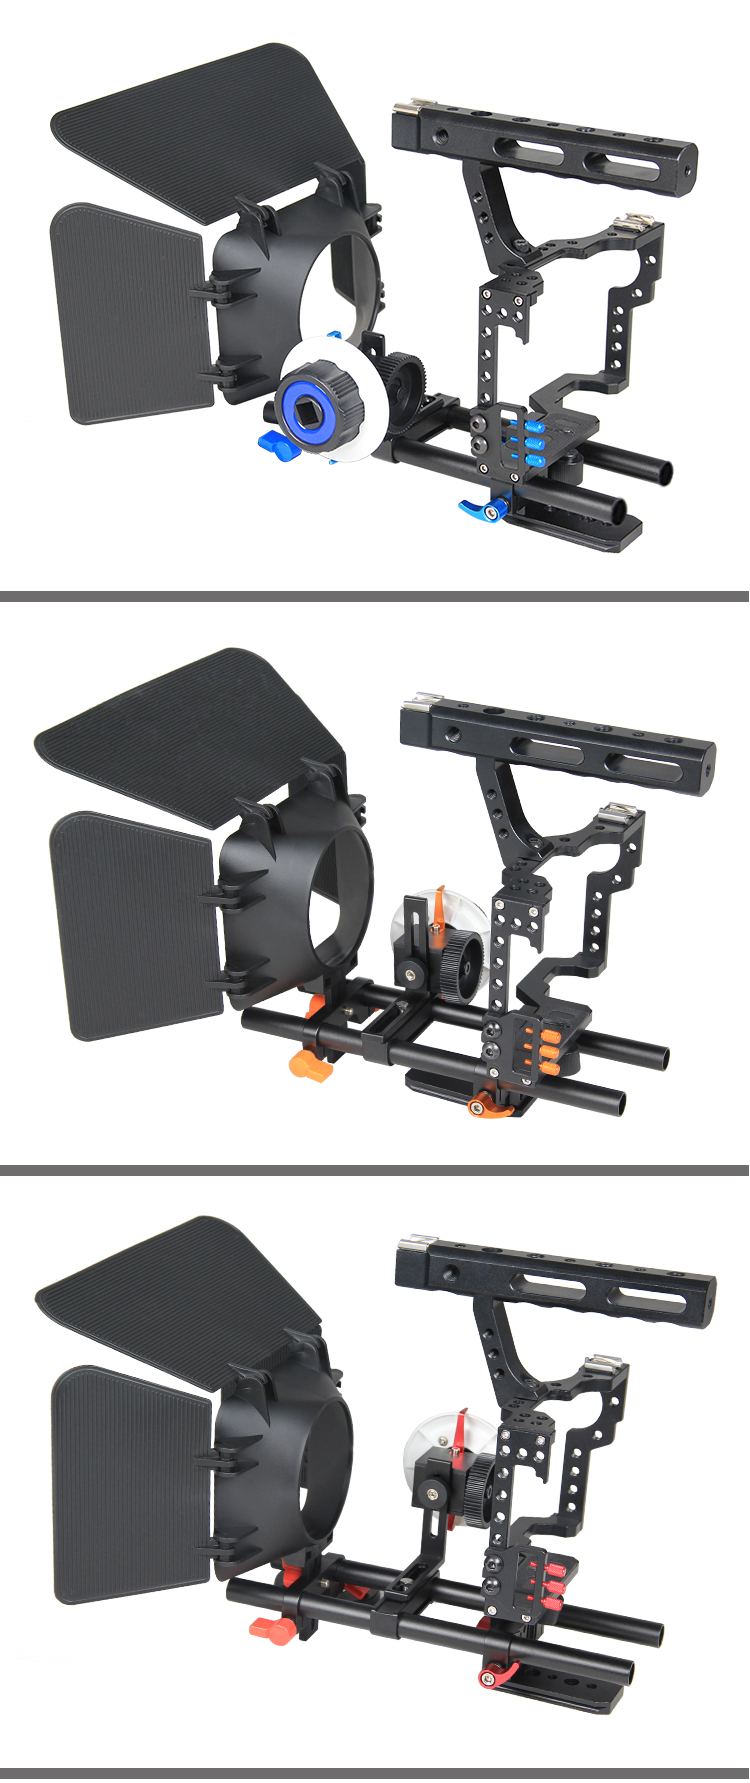 YELANGU Video Equipment Metal ABS Top Handle DSLR Rig Video Camera Cage Kit For GH4, A7S